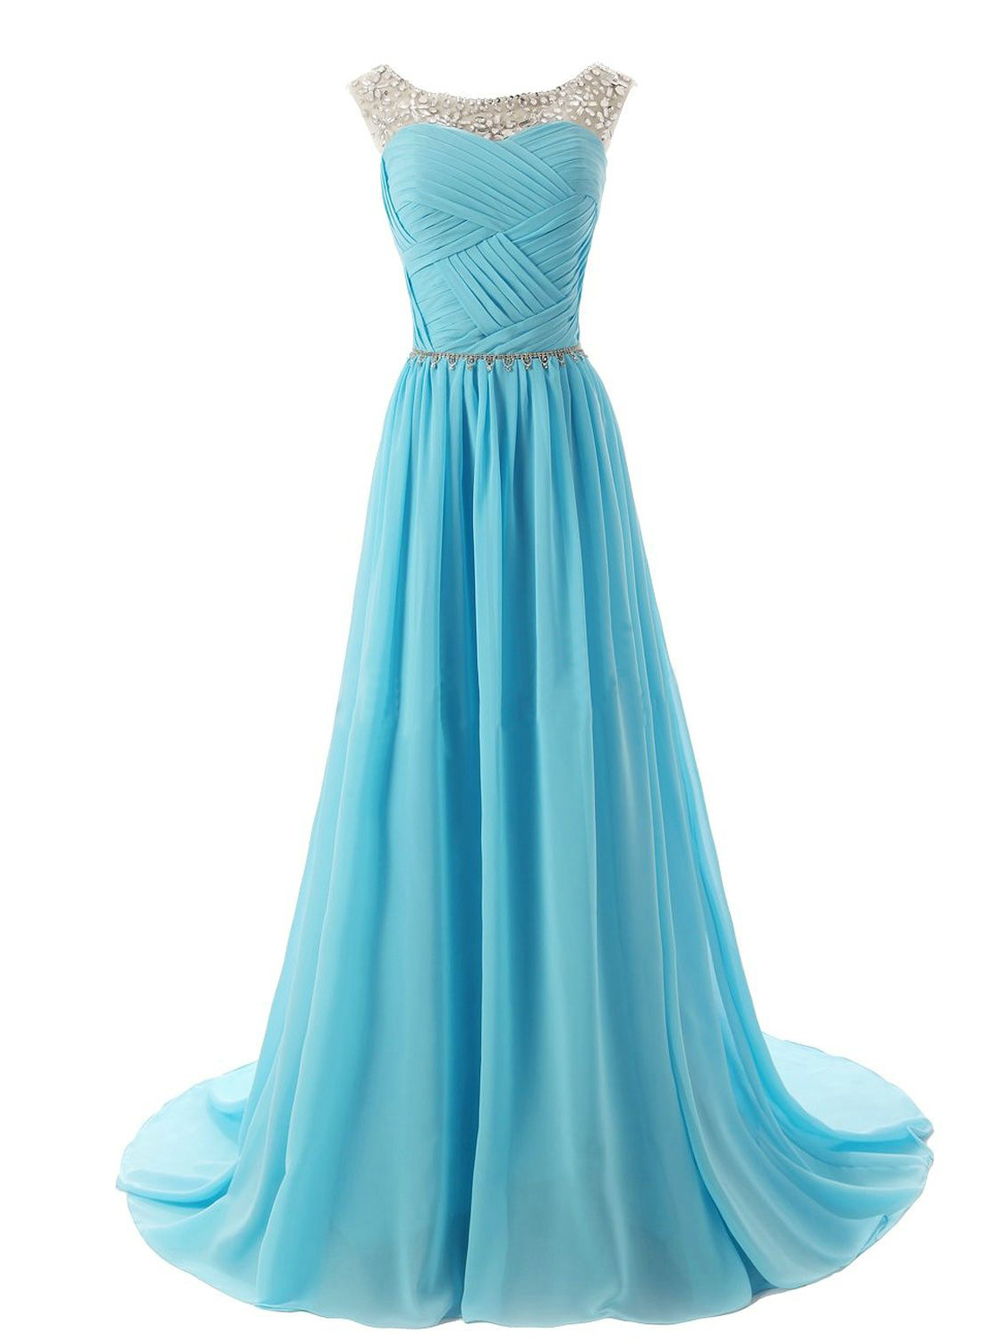 A-Line Scoop Sweep Train Chiffon Blue Bridesmaid/Prom Dress With Beading